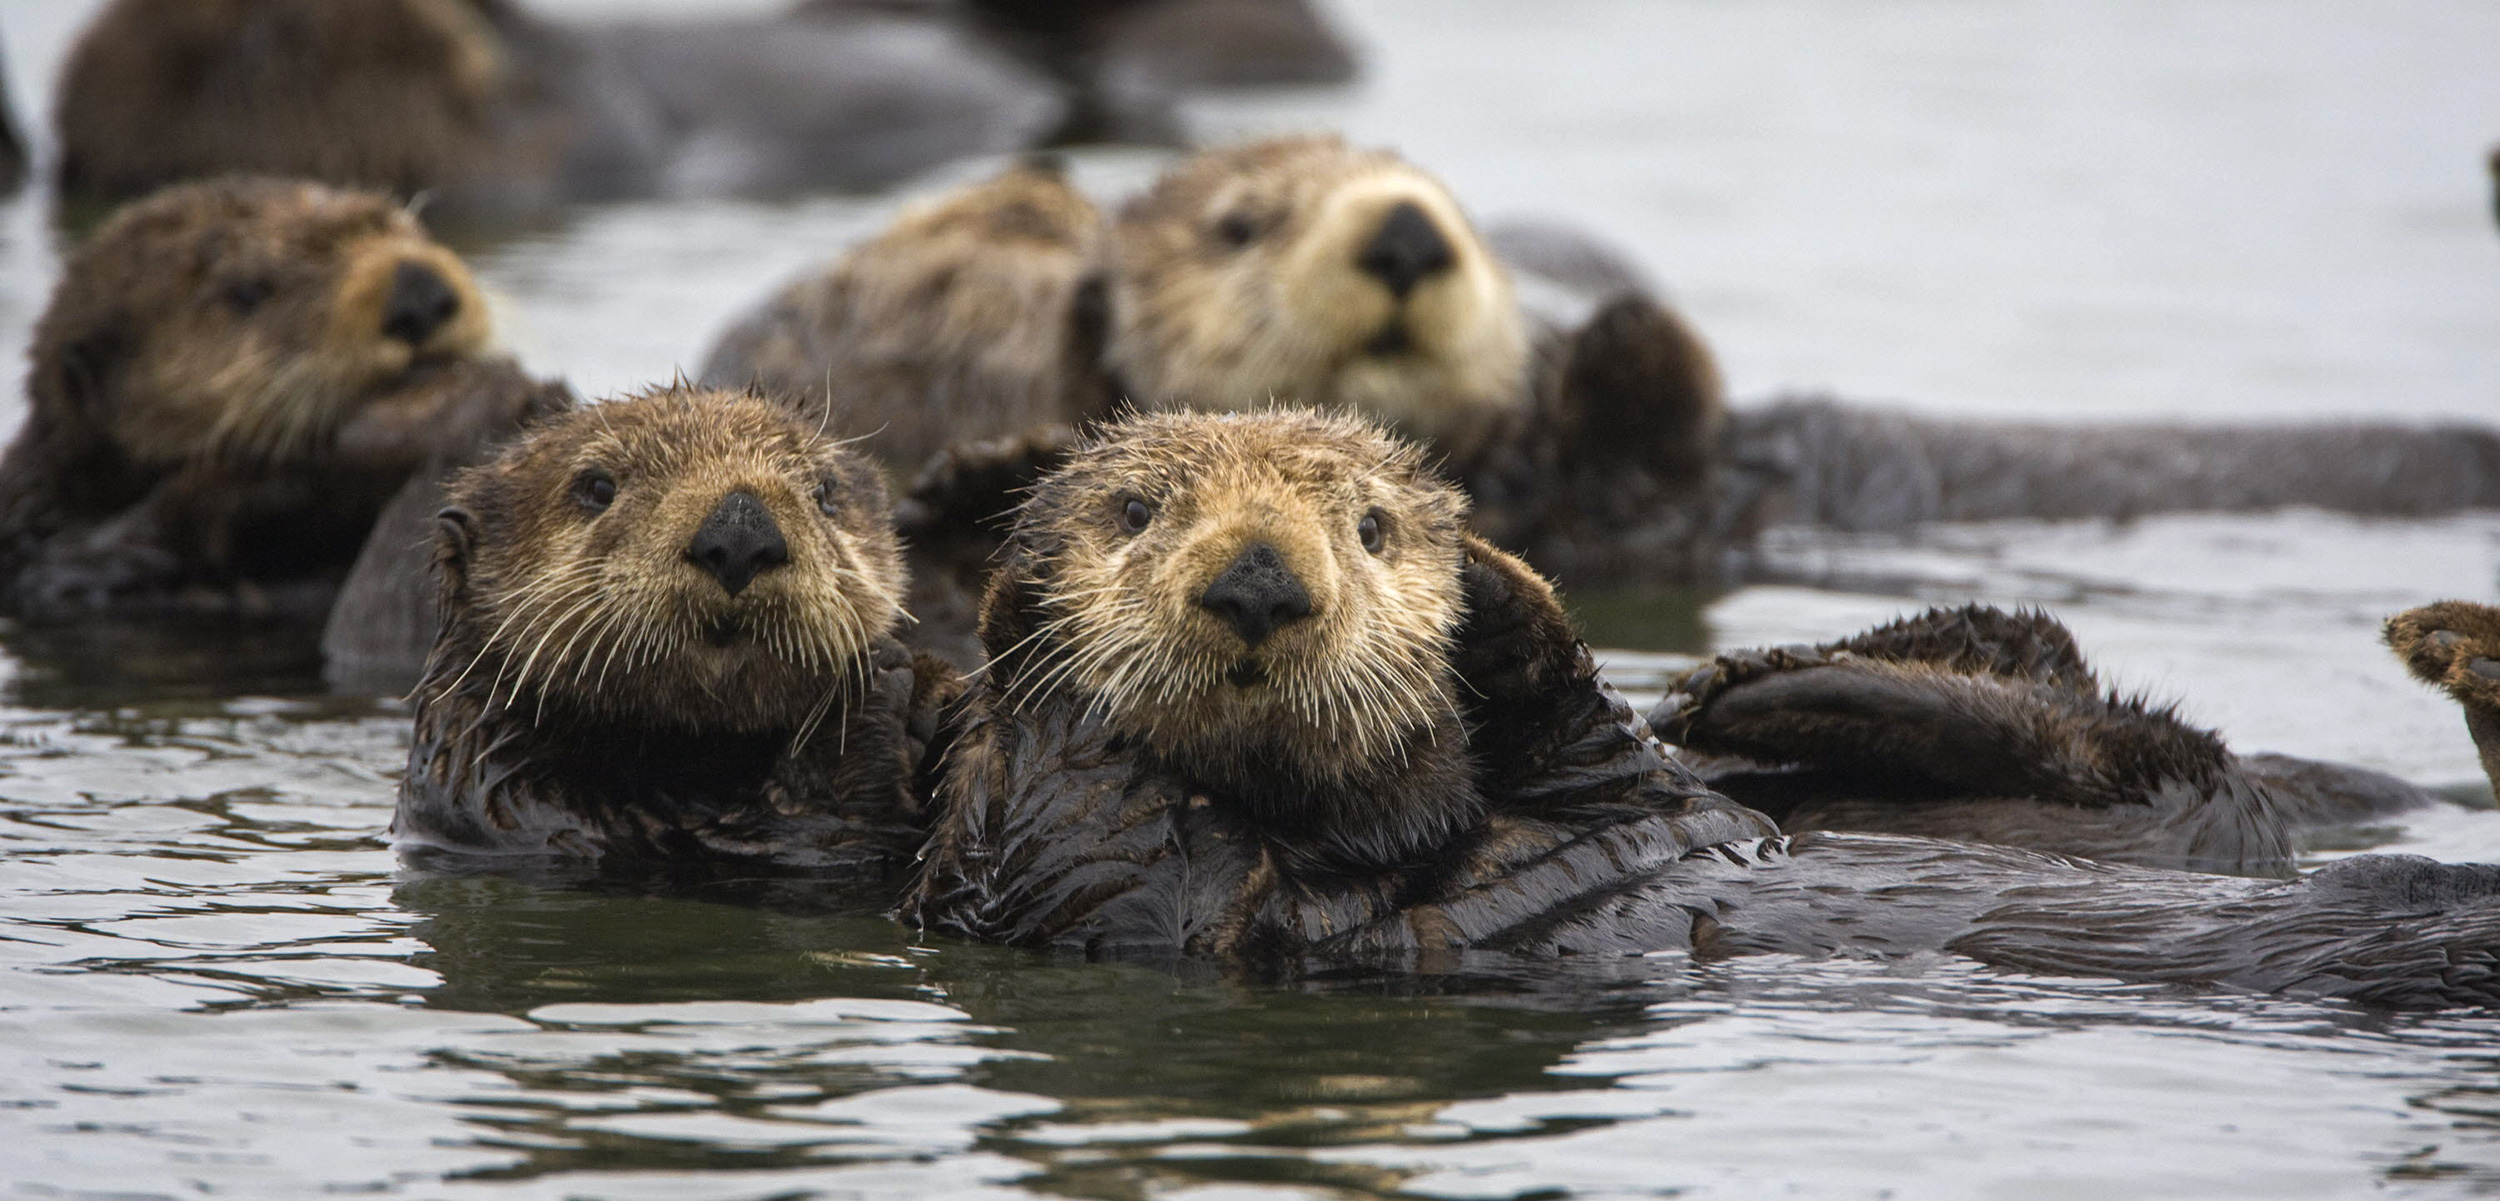 Otters: The Canaries of the Sea